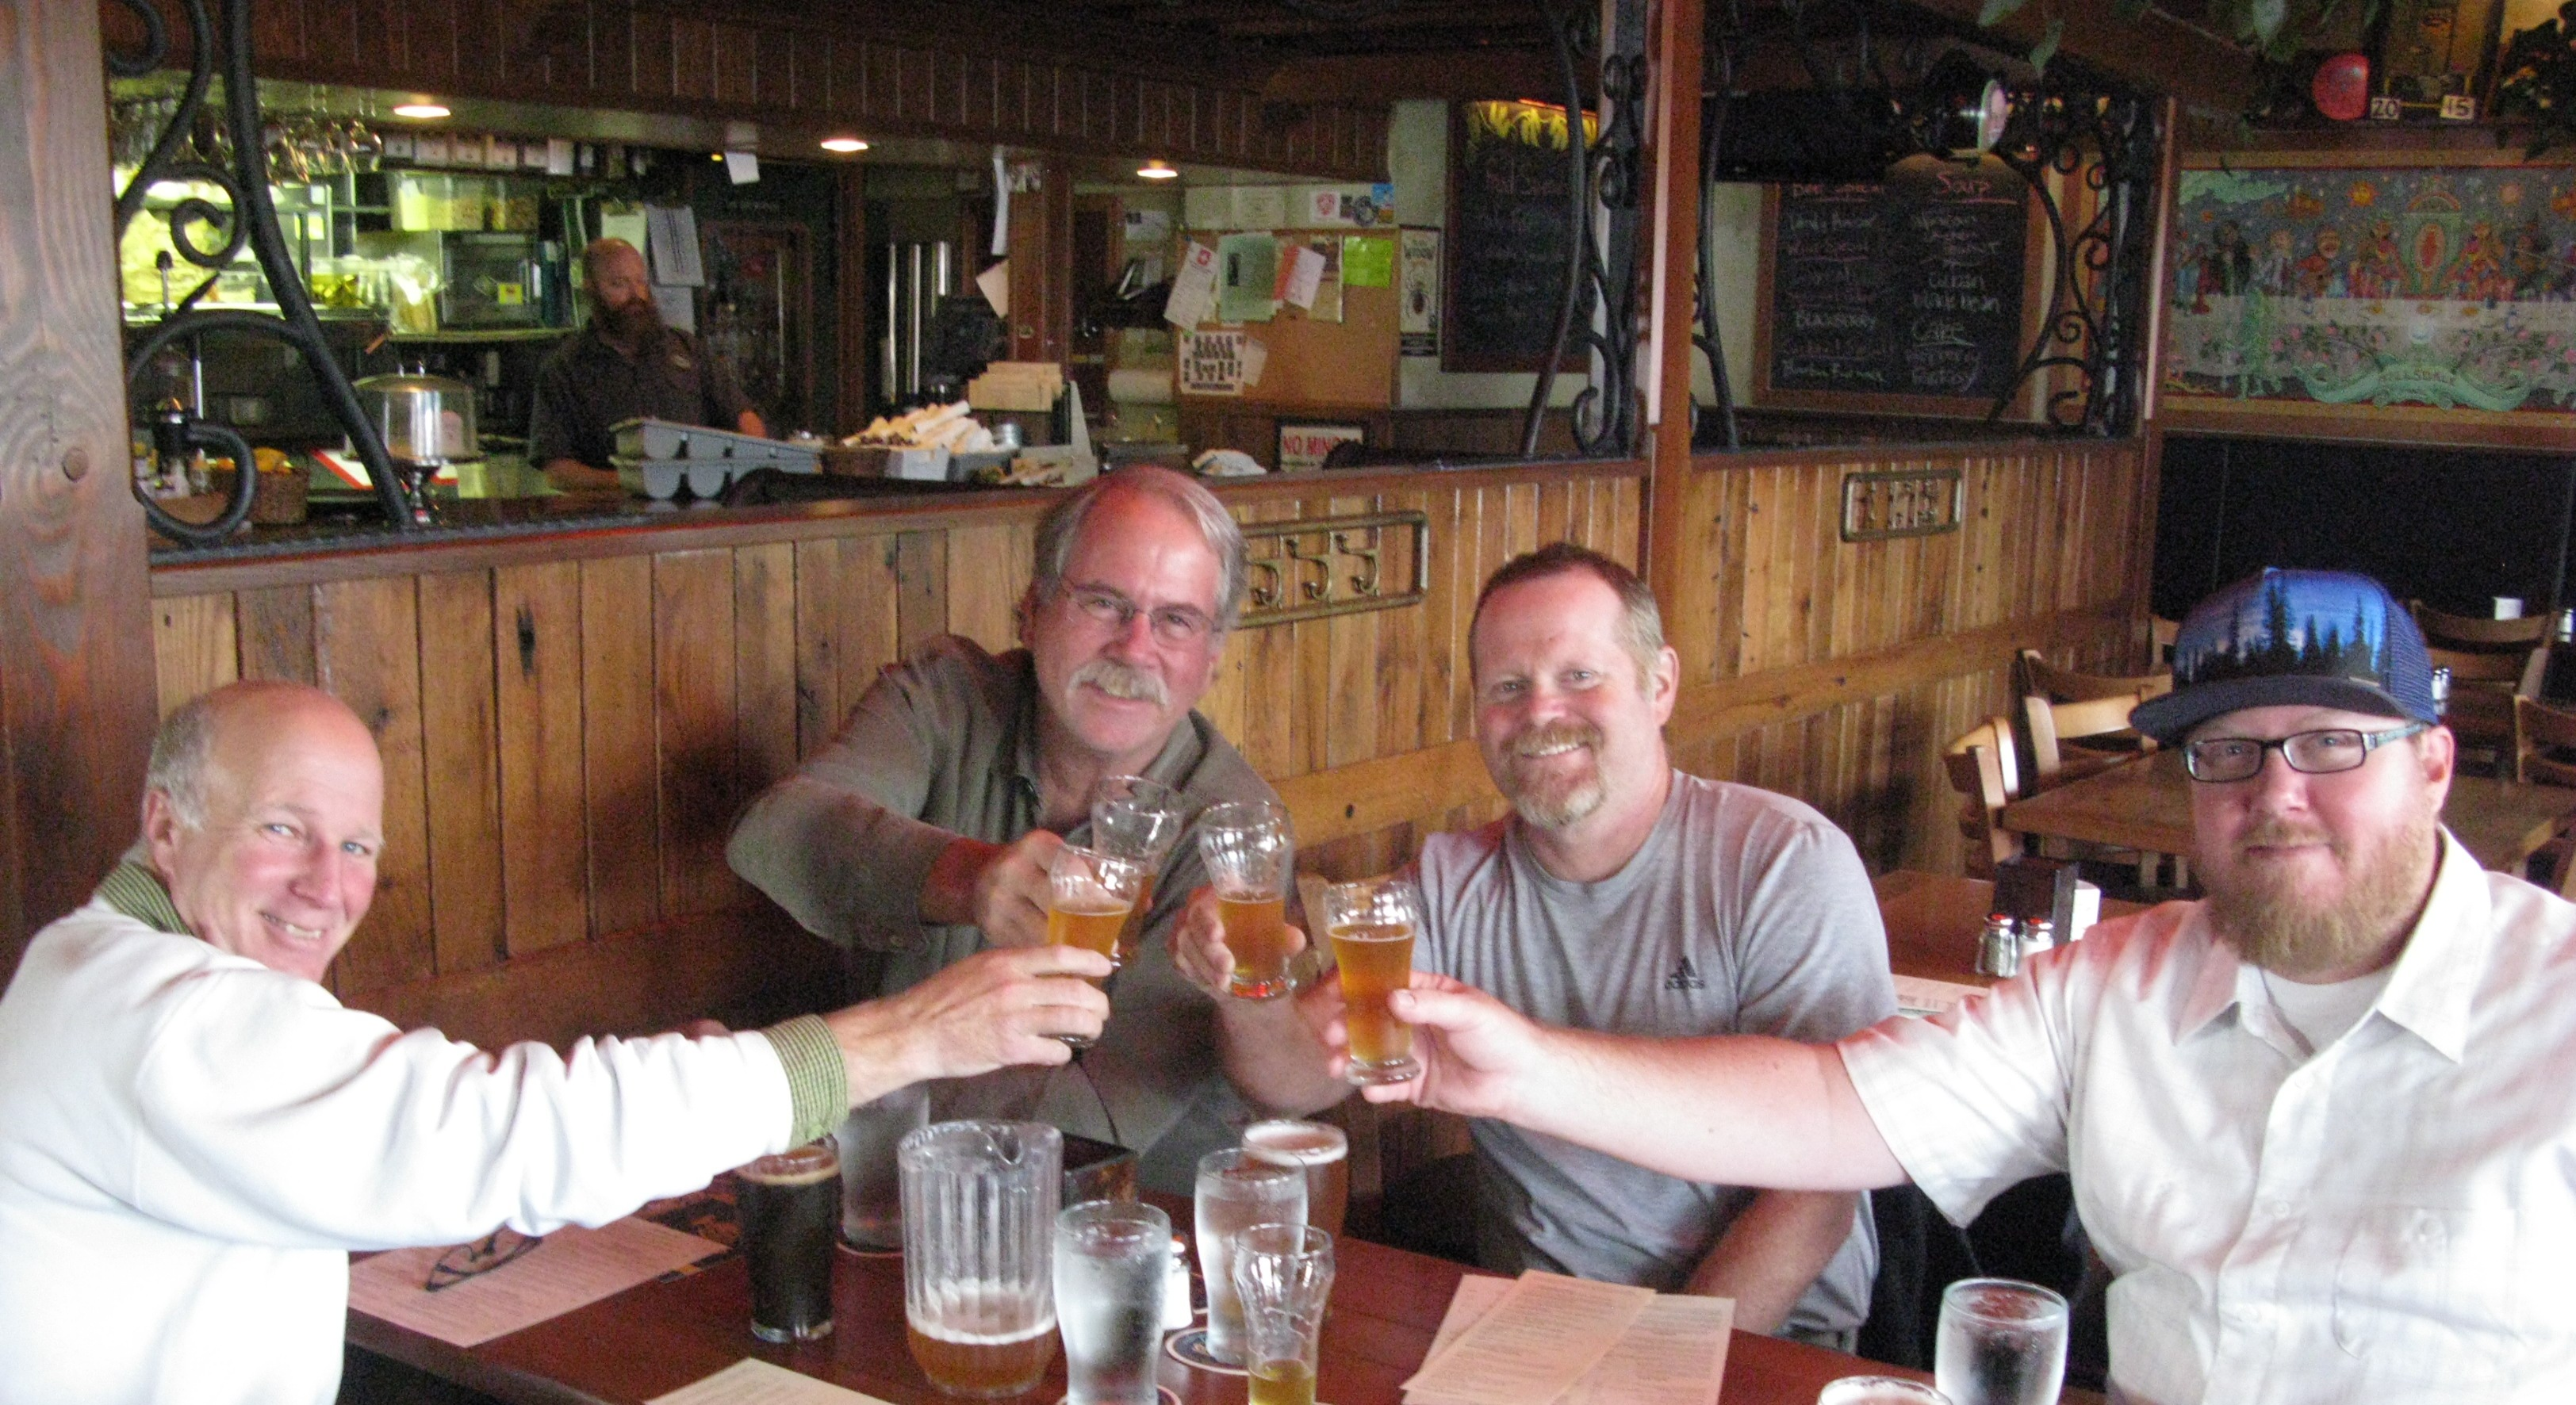 Brian McMenamin, second from left, raises a toast with pub GM Blair Hampson, McMenamins brewery boss Rob Vallance and district brewery manager Graham Brogan,. They were drinking the newly brewed Hillsdale Ale, a new interpretation of the first beer made in Oregon's first brewpub. The original Hillsdale Ale was brewed 30 years ago Sunday at McMenamins Hillsdale pub and the company engaged in some serious arch-ale-ology to reproduce that first recipe -- but in an updated form, because the first McMenamins beers used malt extract, because malsters sold malted barley by the ton and not the bag back in the early days of craft brewing. Celebrate Oergon's first brewpub brewed beer Sunday at all McMenamins locations -- thay'll all be pouring Hillsdale Ale for the special price of $4 a pint or $8 for a growler fill... FoystonFoto